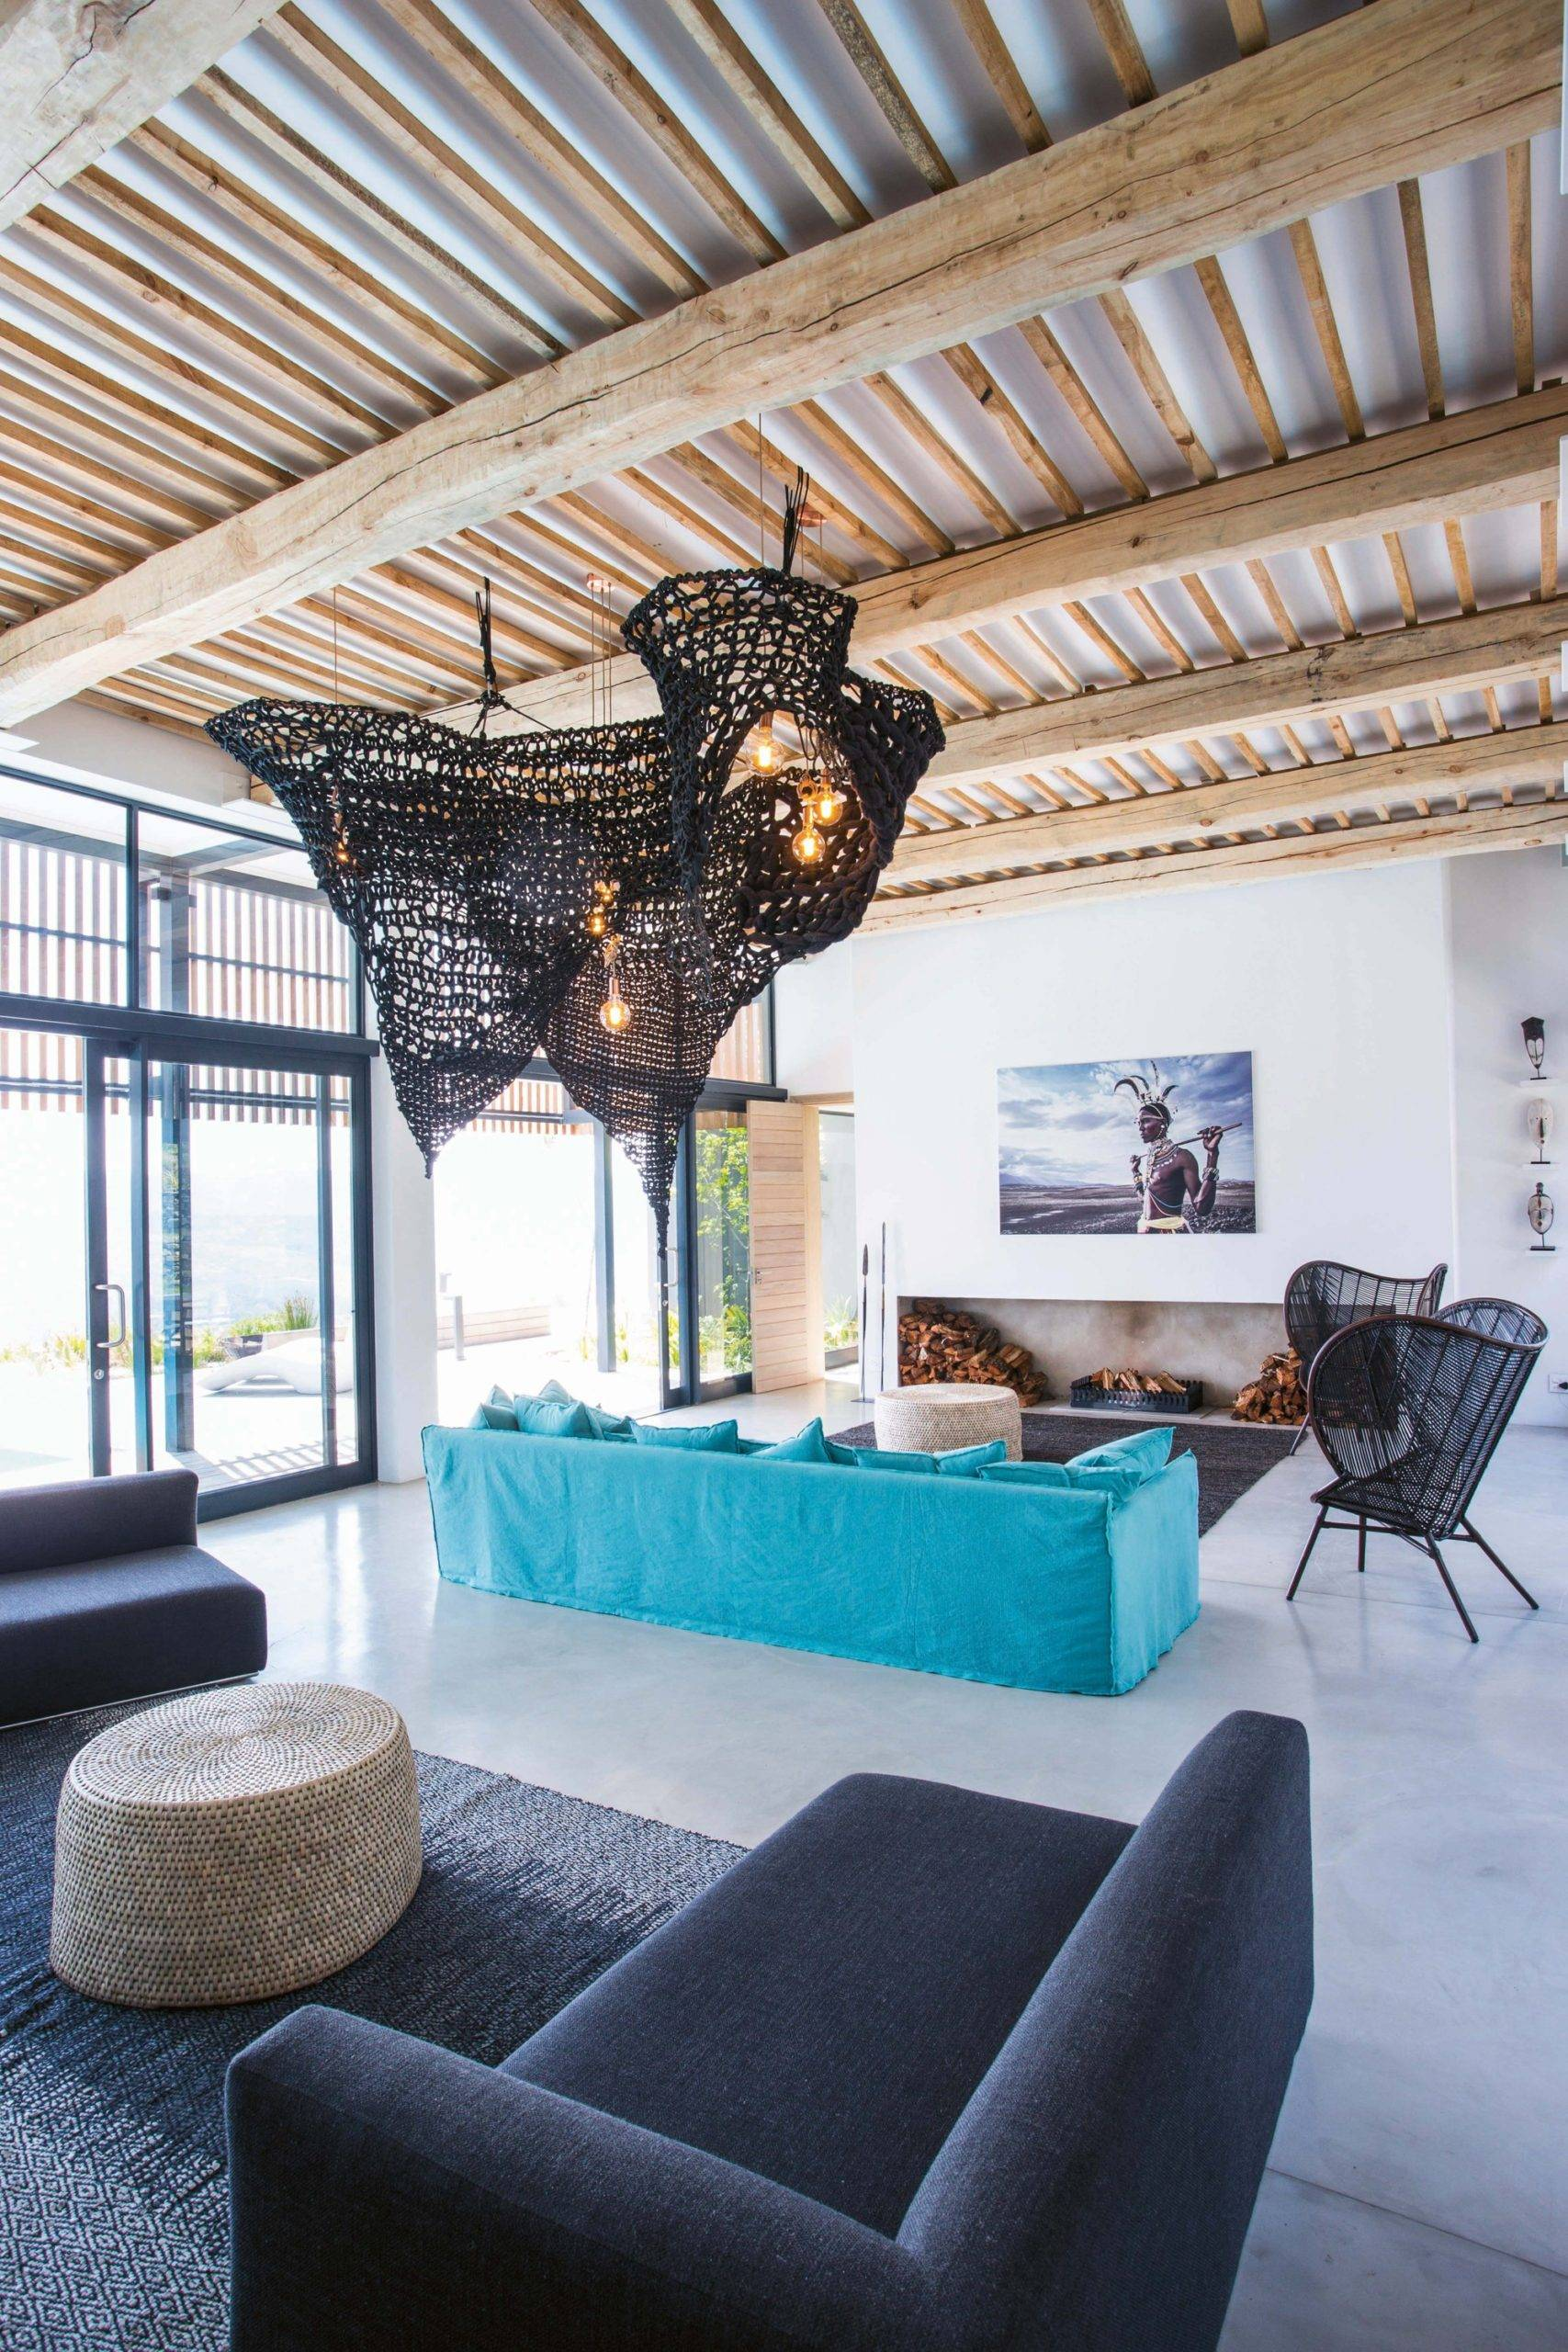 Innovative interior of the house combines design inspired by rustic African style with modernity